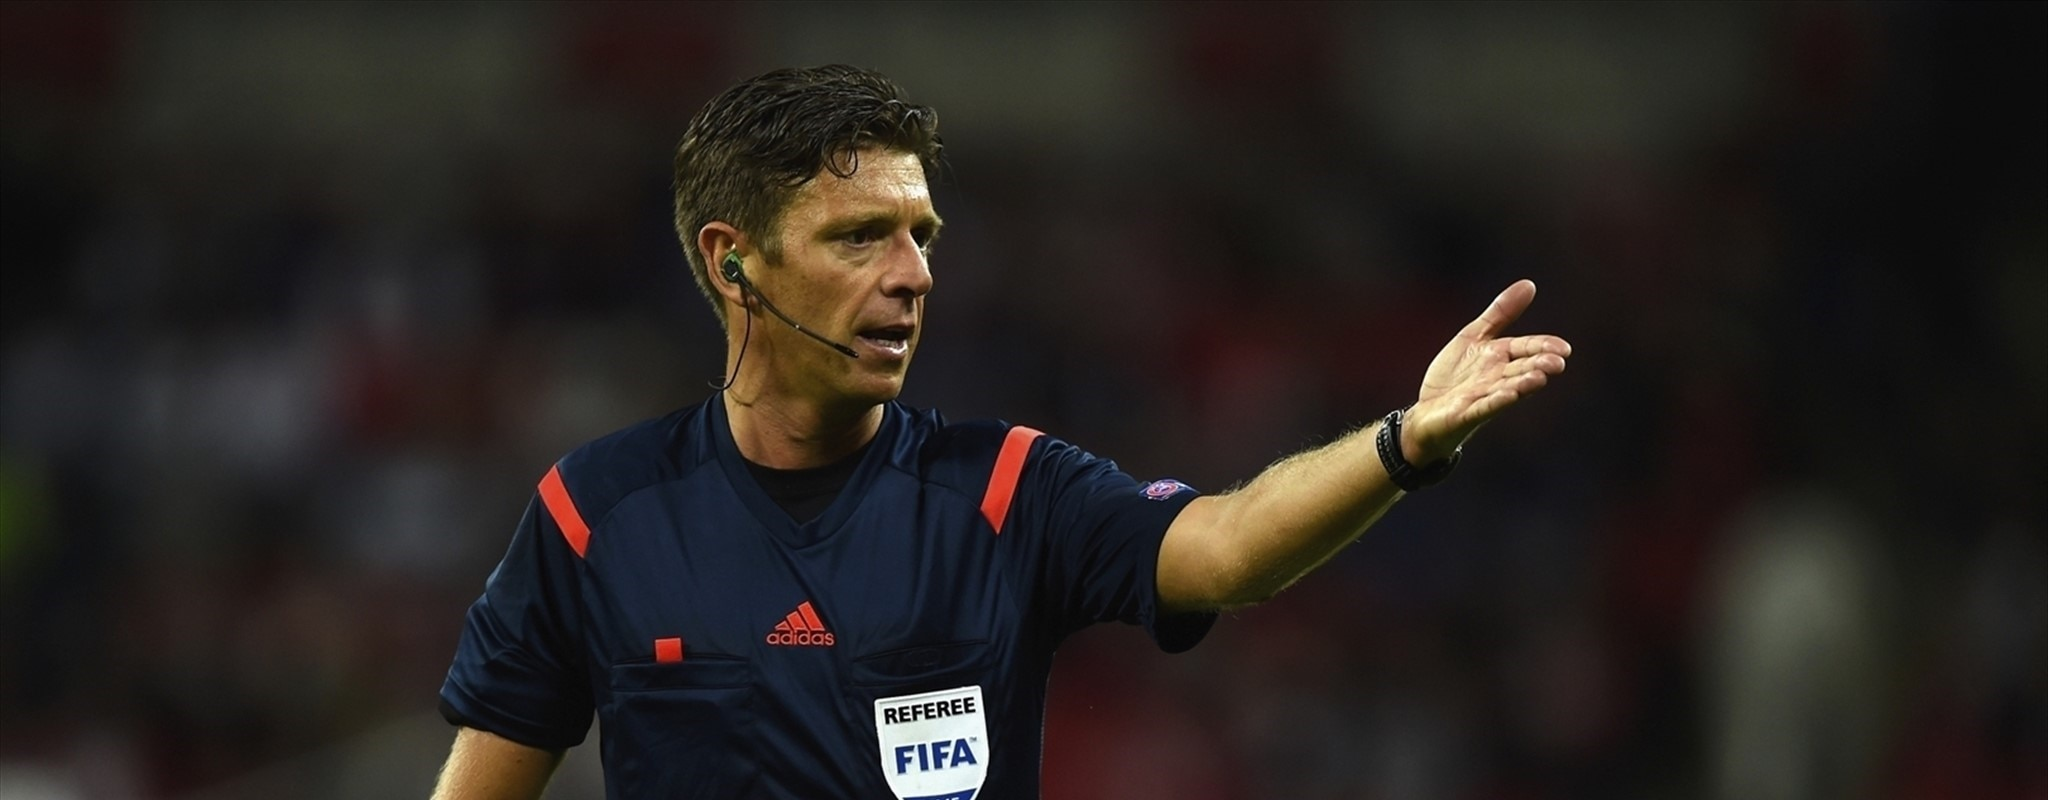 Italian referee Gianluca Rocchi to officiate 2017 UEFA Super Cup